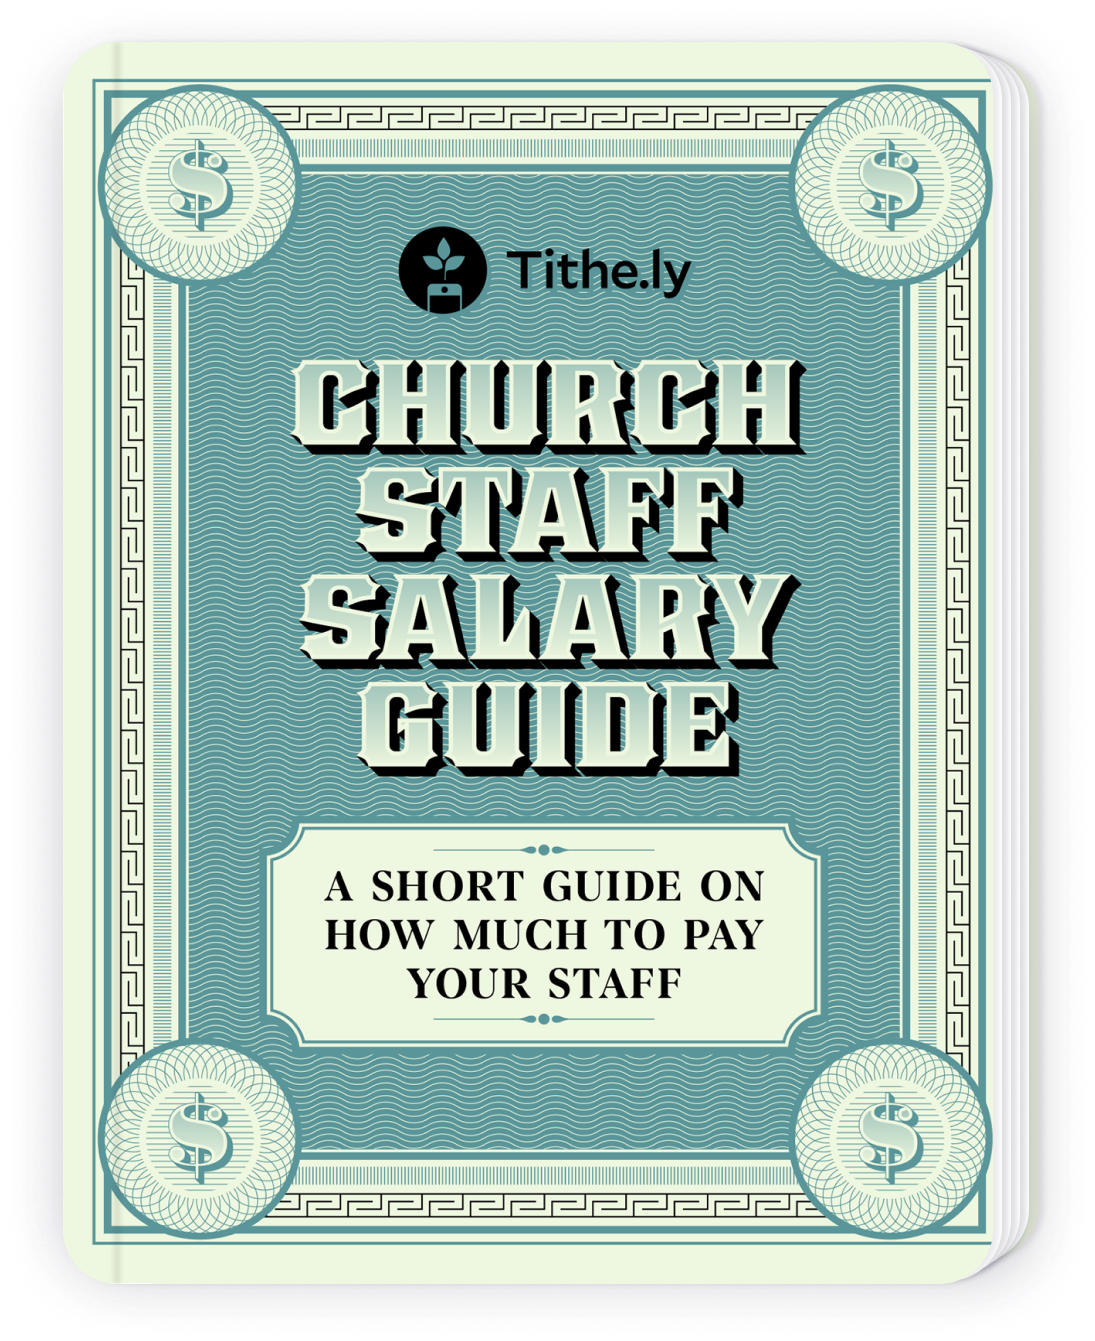 Know what to pay your church staff. Improve your hiring, staff morale, and retention with this latest guide.